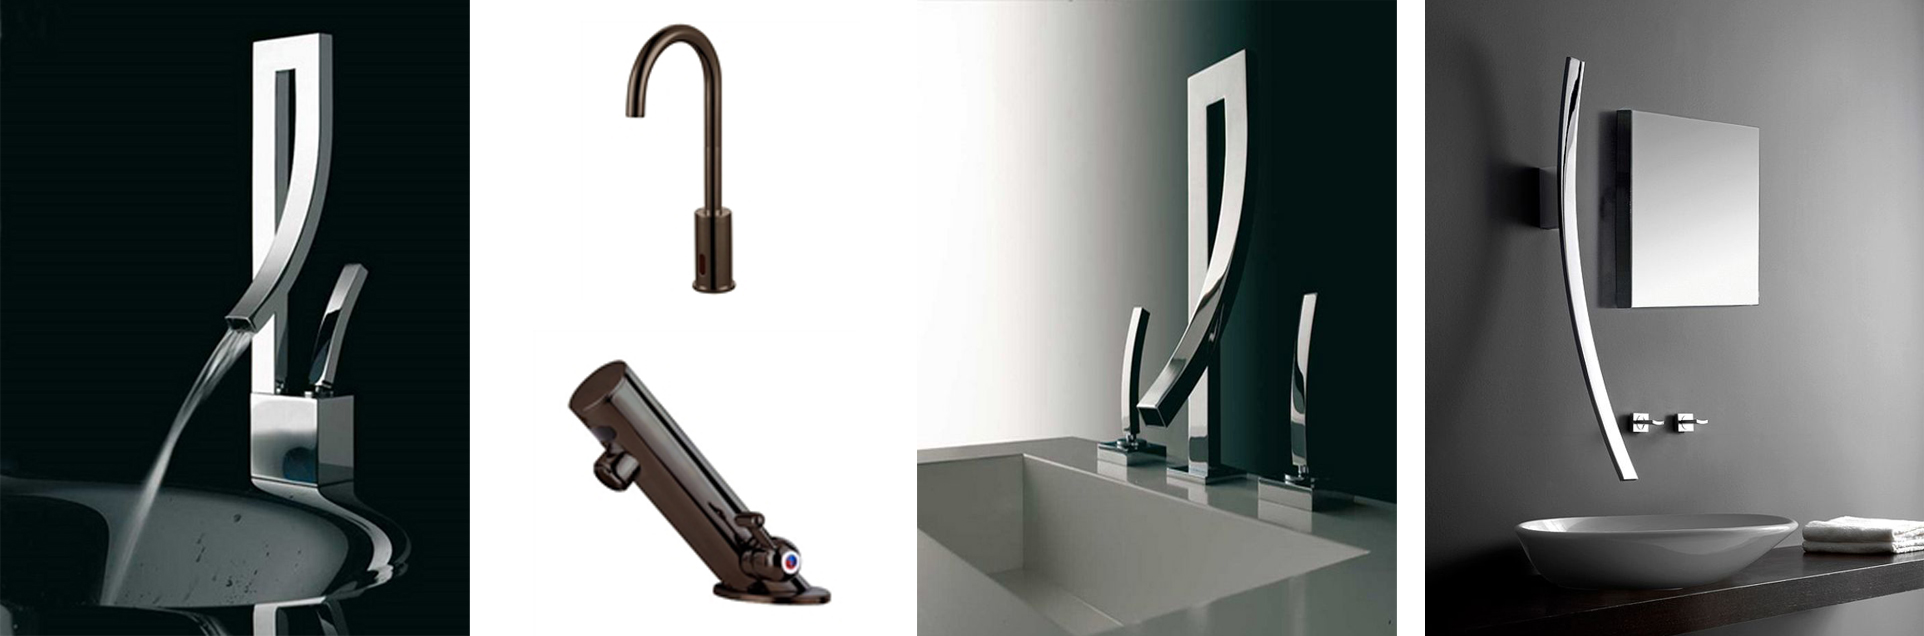 Faucet Finishes - an Important Design Element